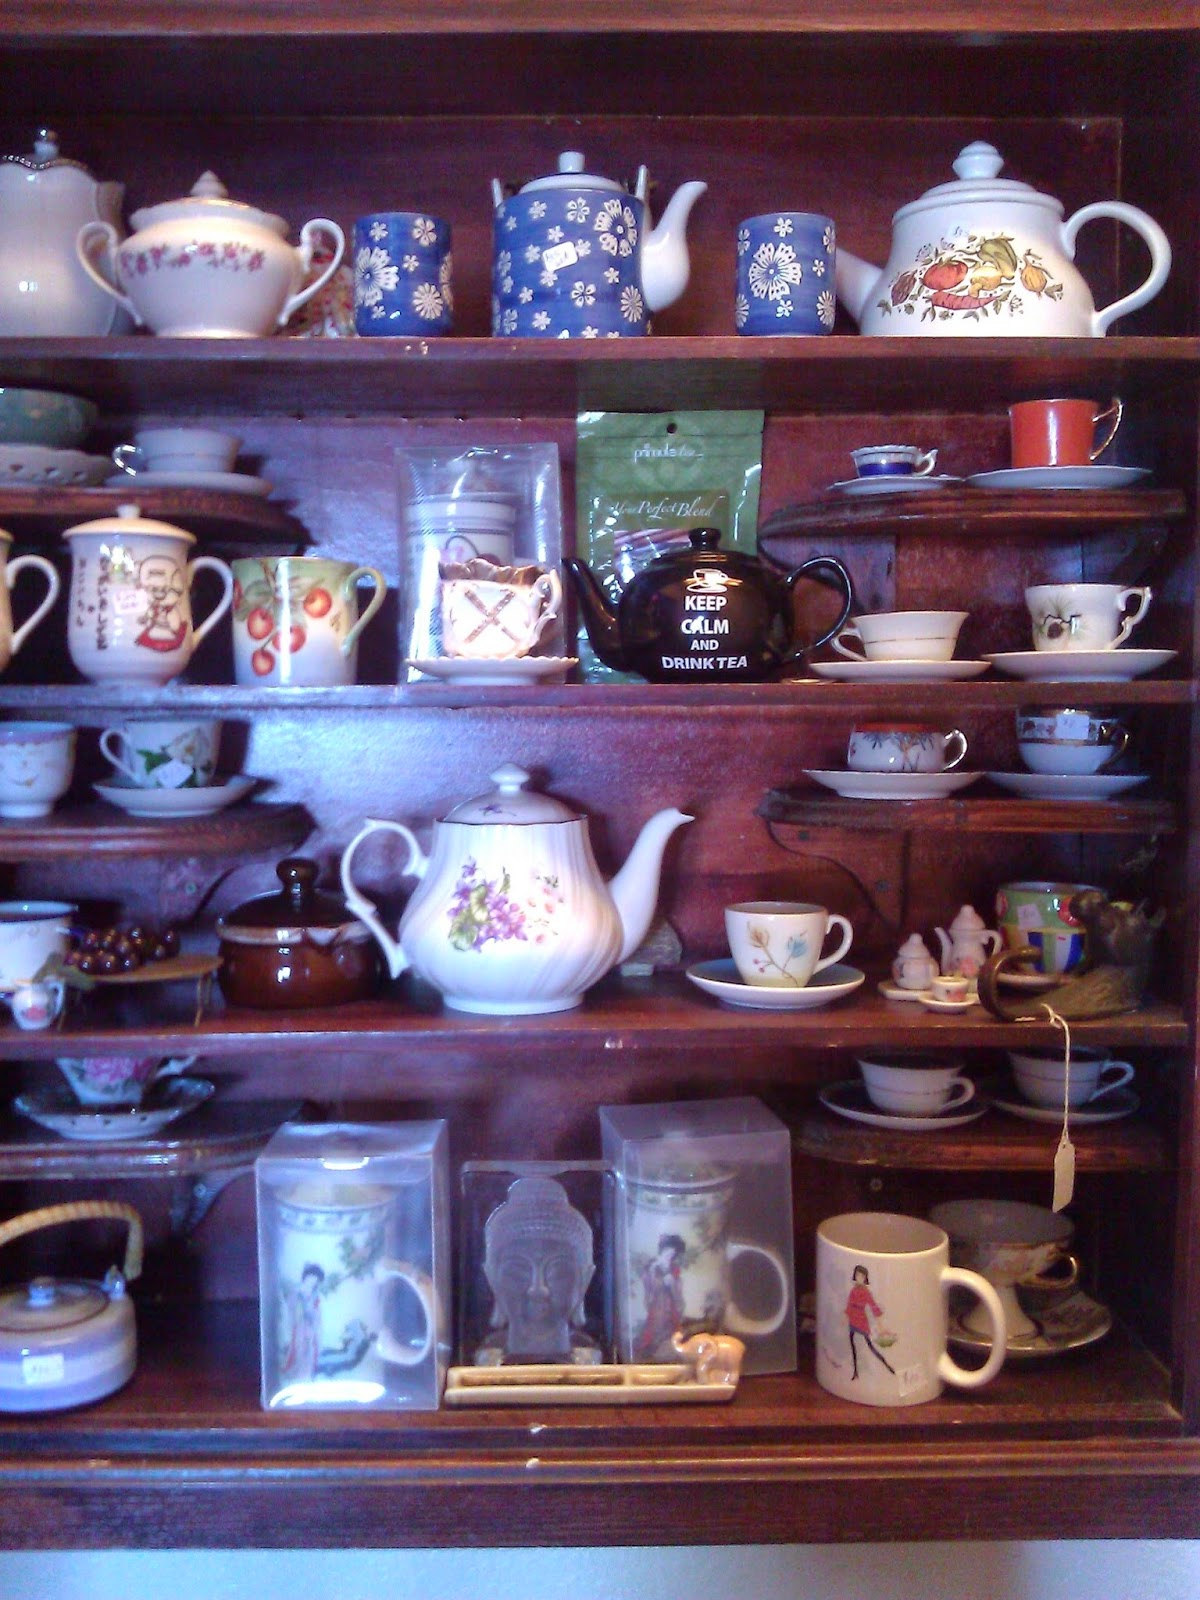 Display of Tea pots and cups